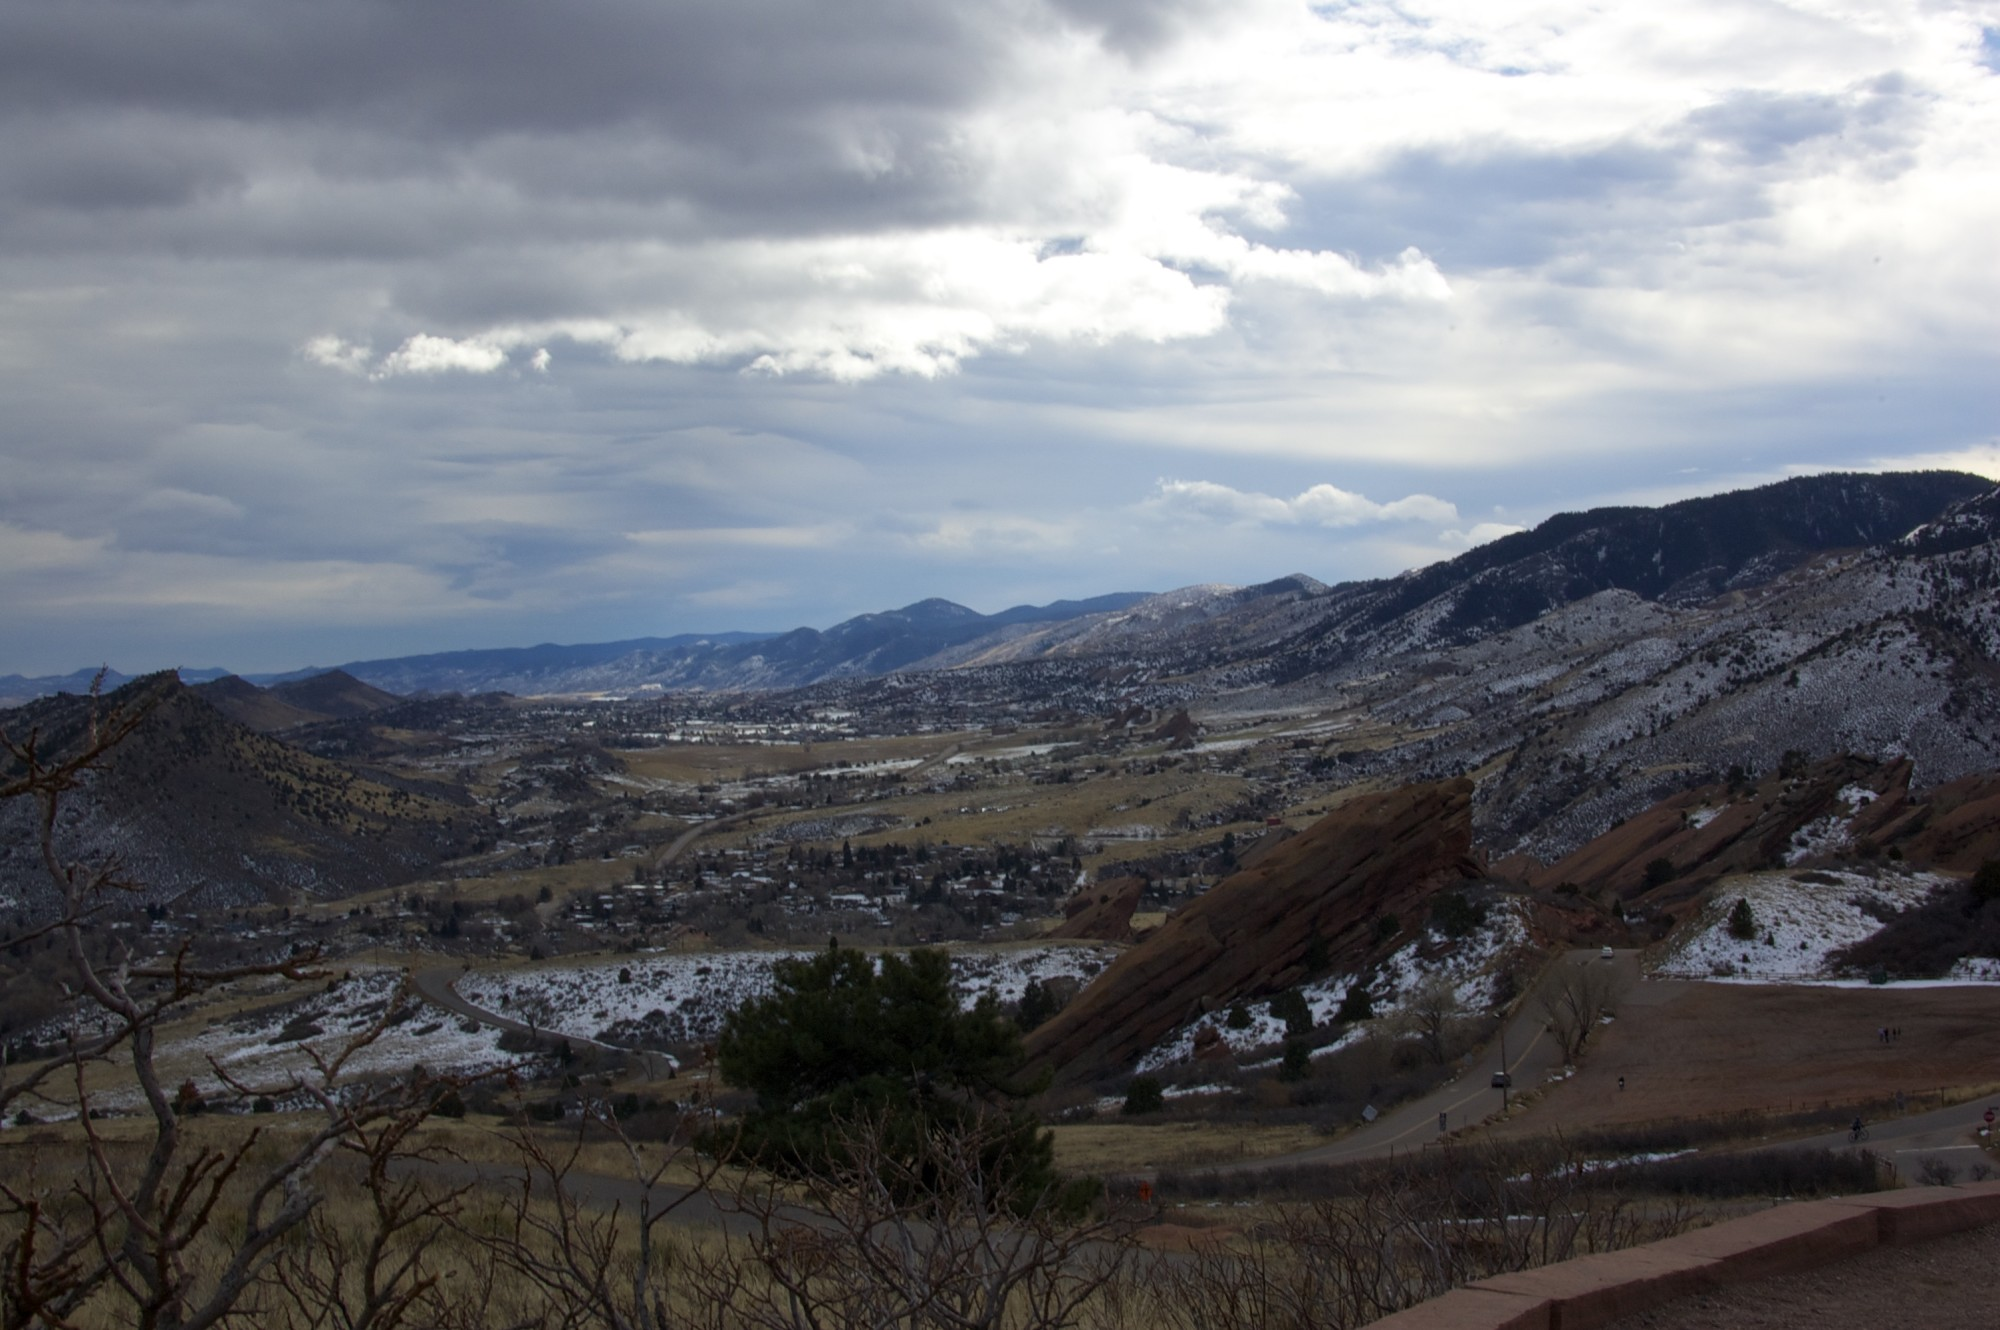 A view from a trail at Red Rocks